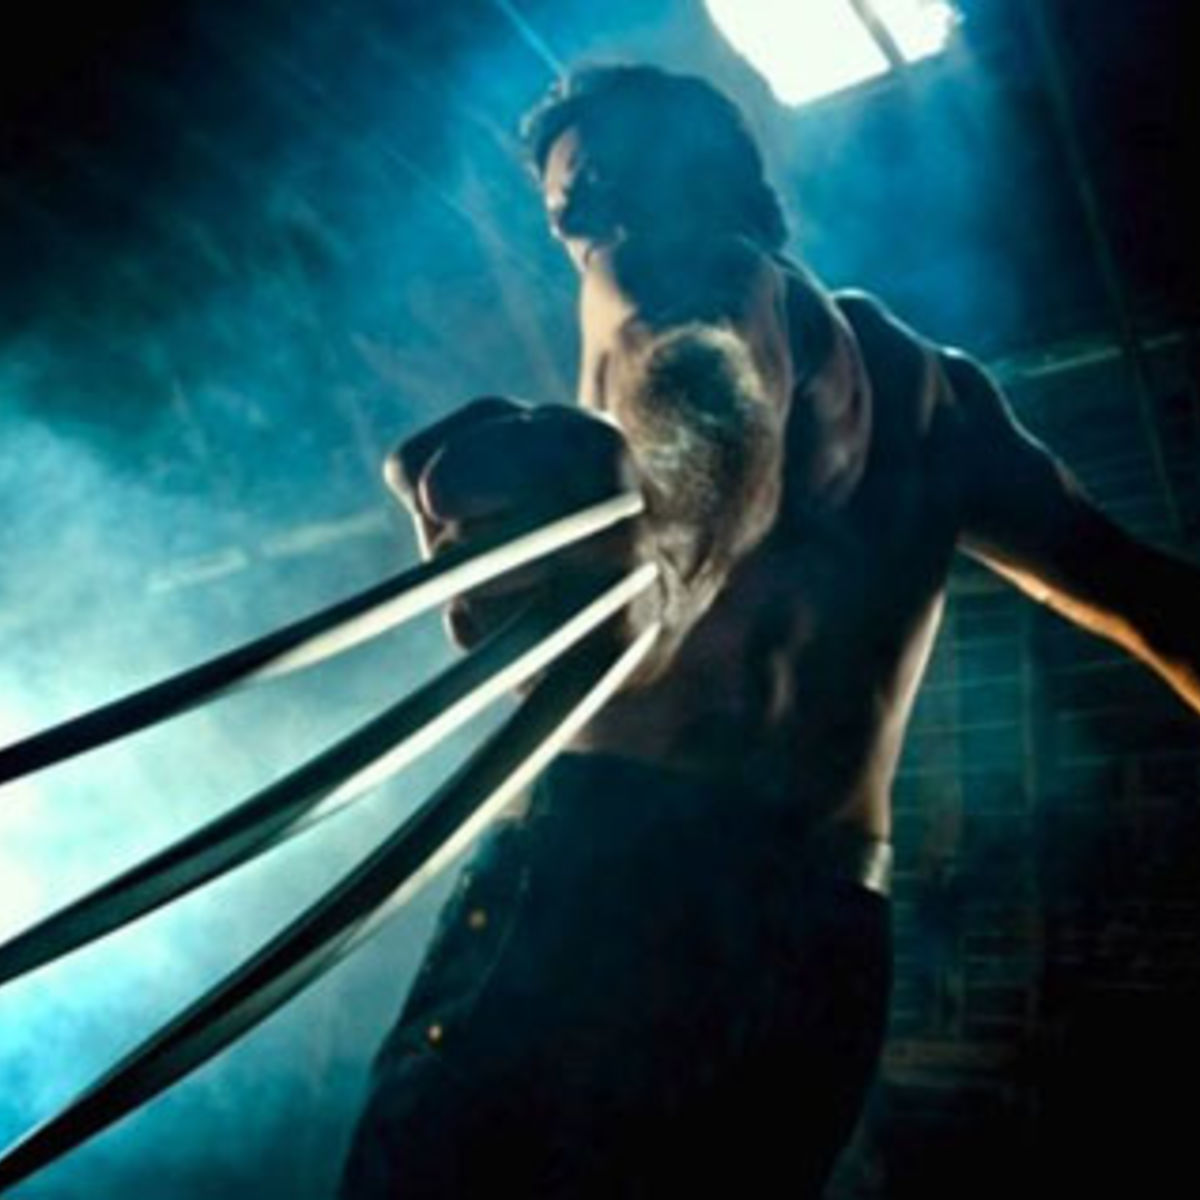 Hugh-Jackman-as-Wolverine_0.jpg